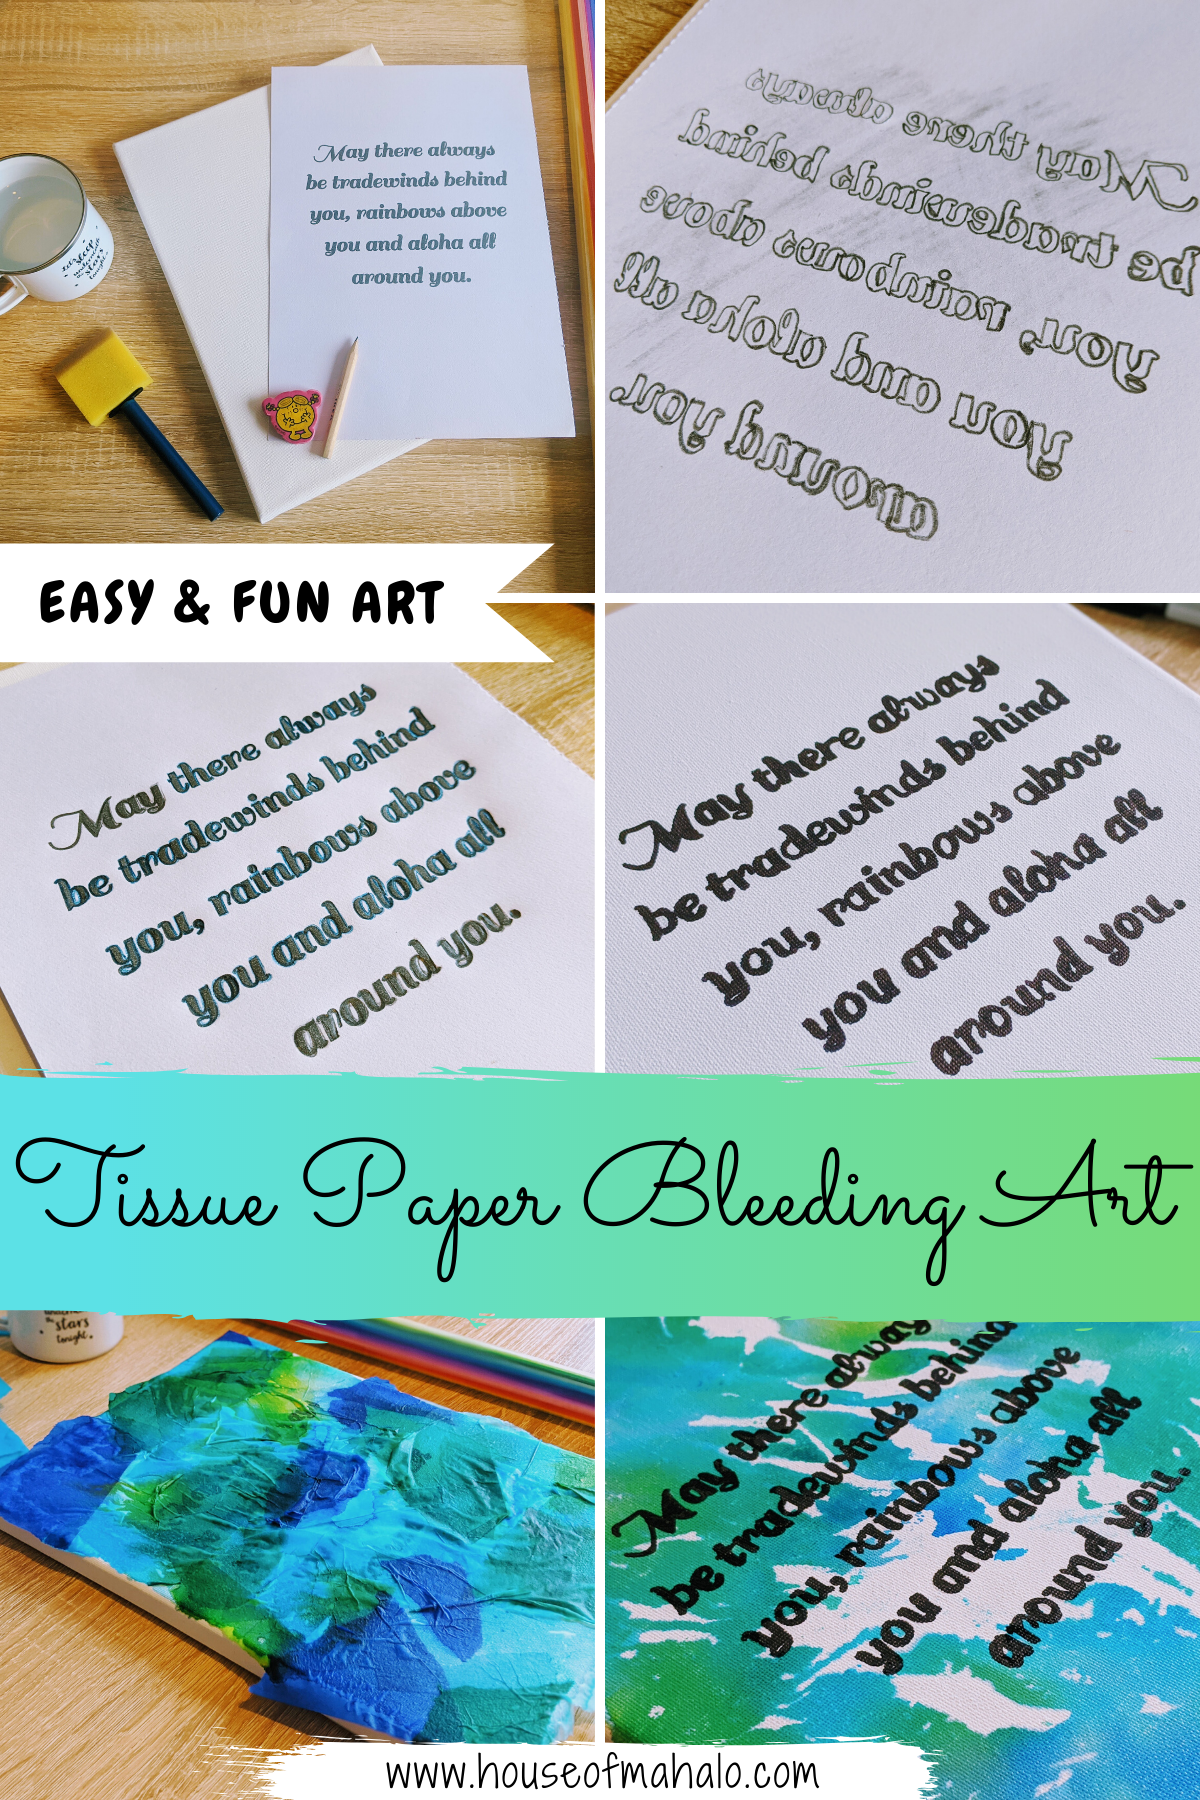 Fun Tissue Paper Bleeding Art Project [+ HOW TO VIDEO]